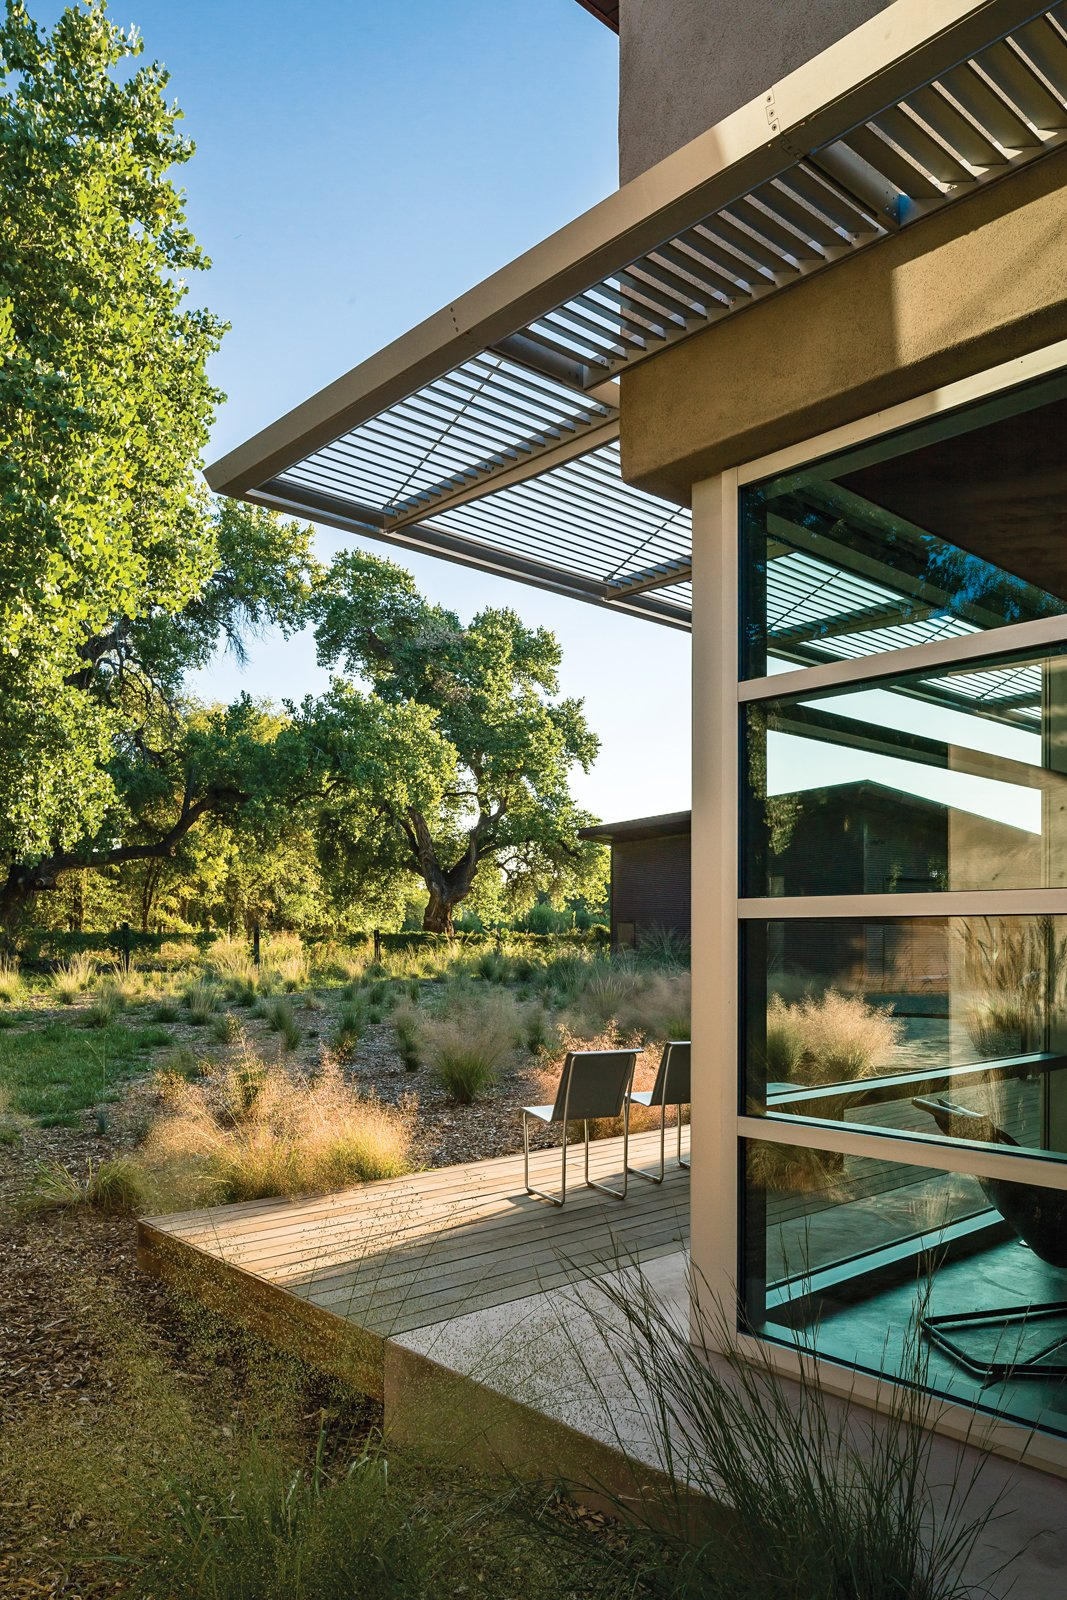 """One major directive was to """"honor the tree,"""" referring to a particular 85-year-old cottonwood on the property. Photo by: Kirk Gittings Tagged: Outdoor, Wood Patio, Porch, Deck, and Small Patio, Porch, Deck. A Sustainable Rammed Earth Home in New Mexico - Photo 1 of 5"""